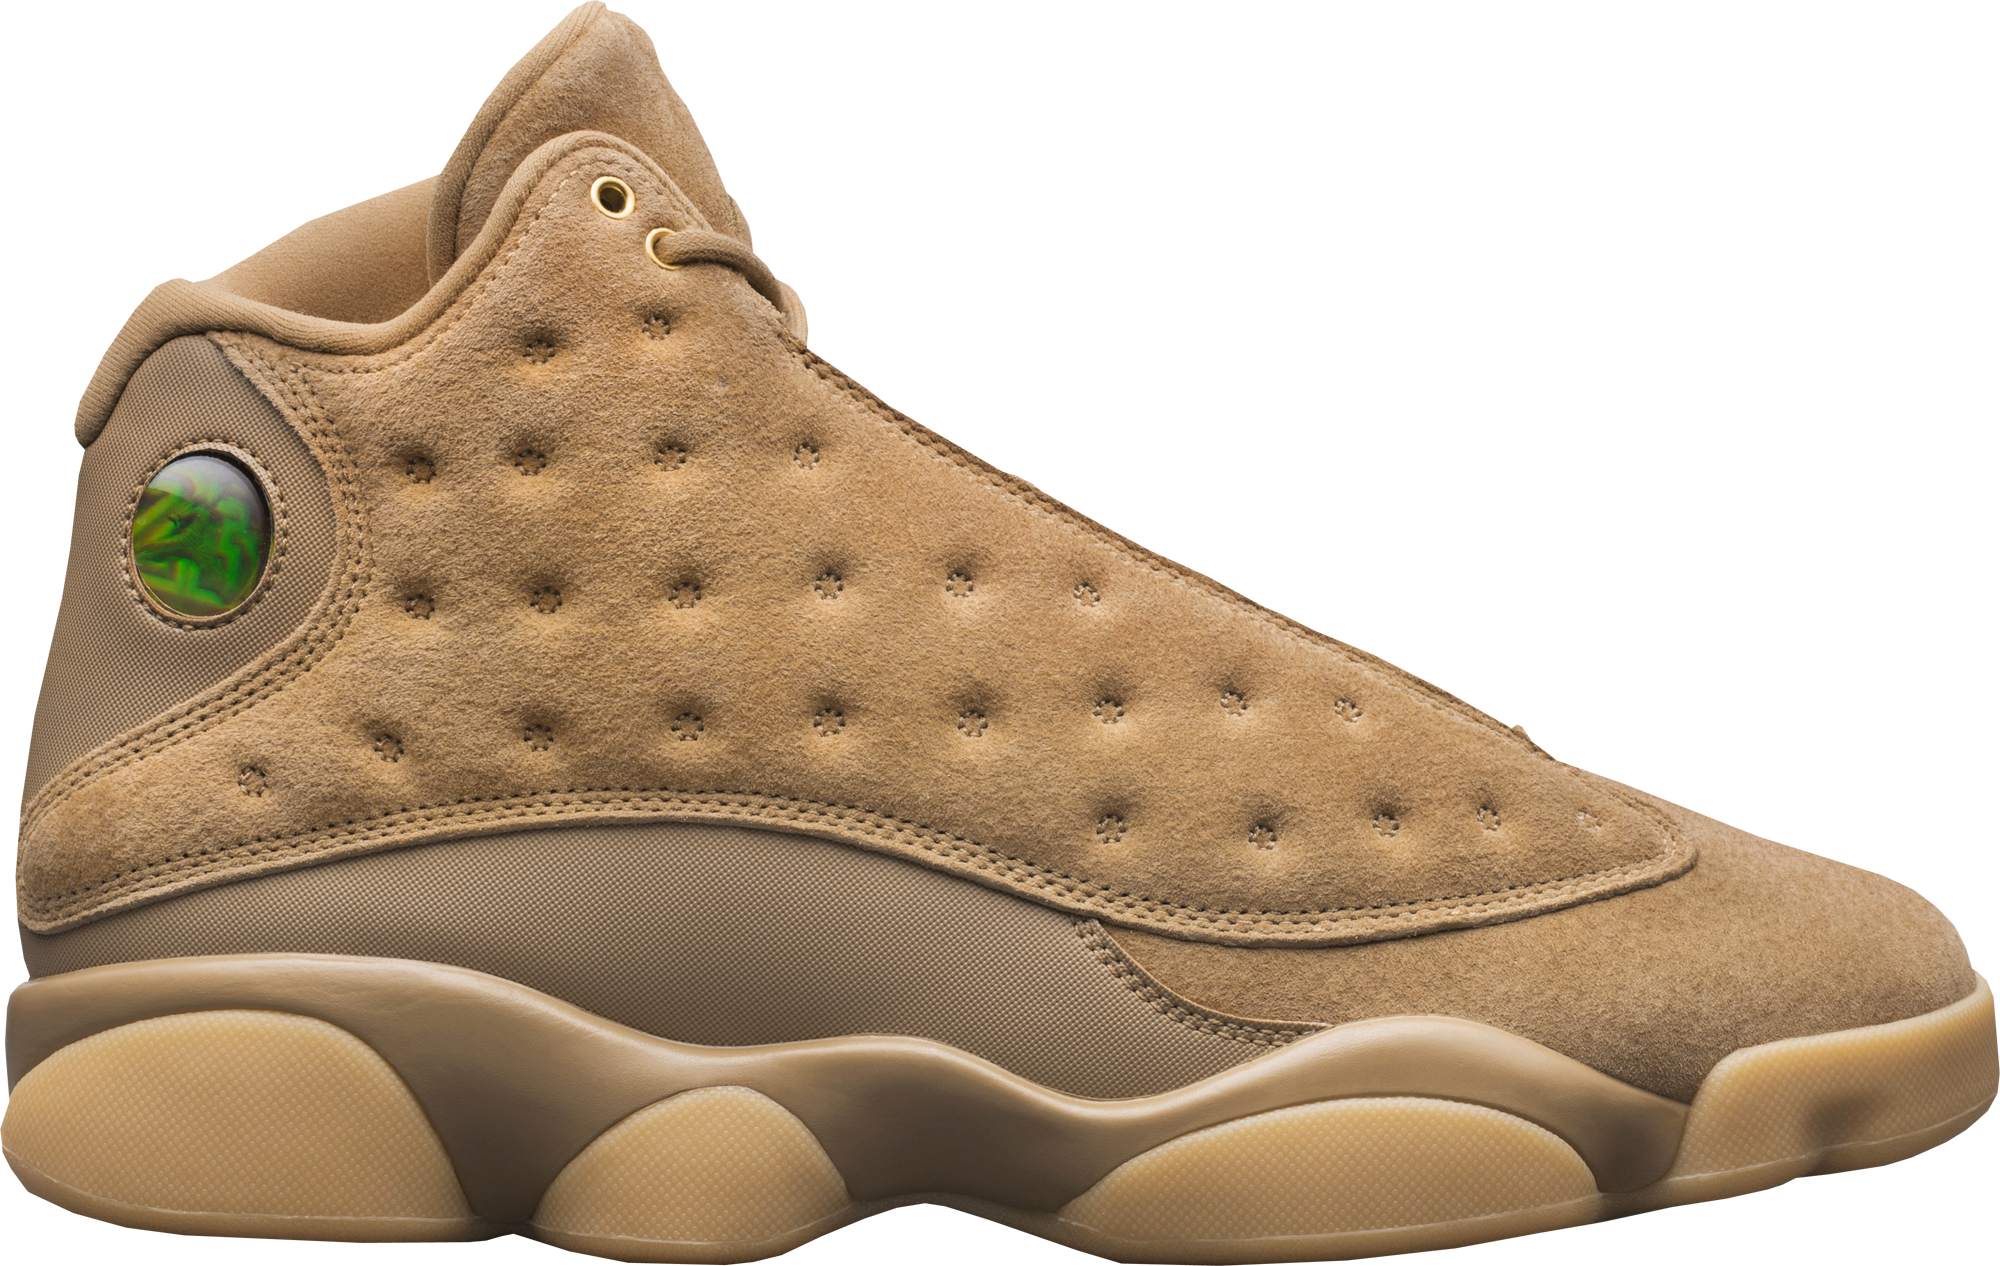 Jordan 13 Retro Wheat